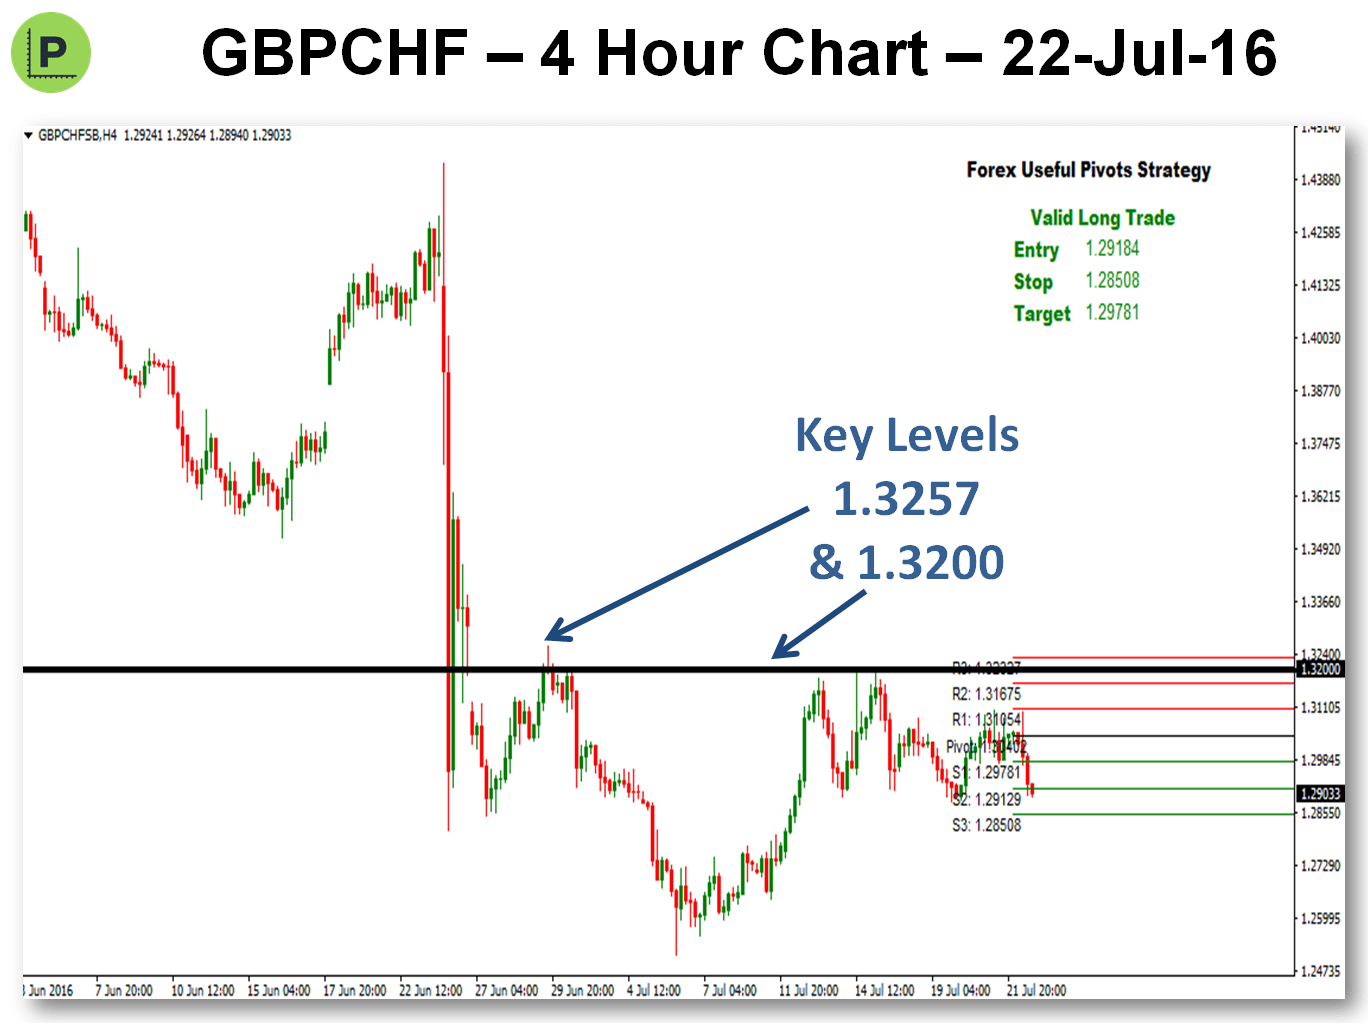 Potential Pivots Trades For Next Week - 23-Jul-16 GBPCHF